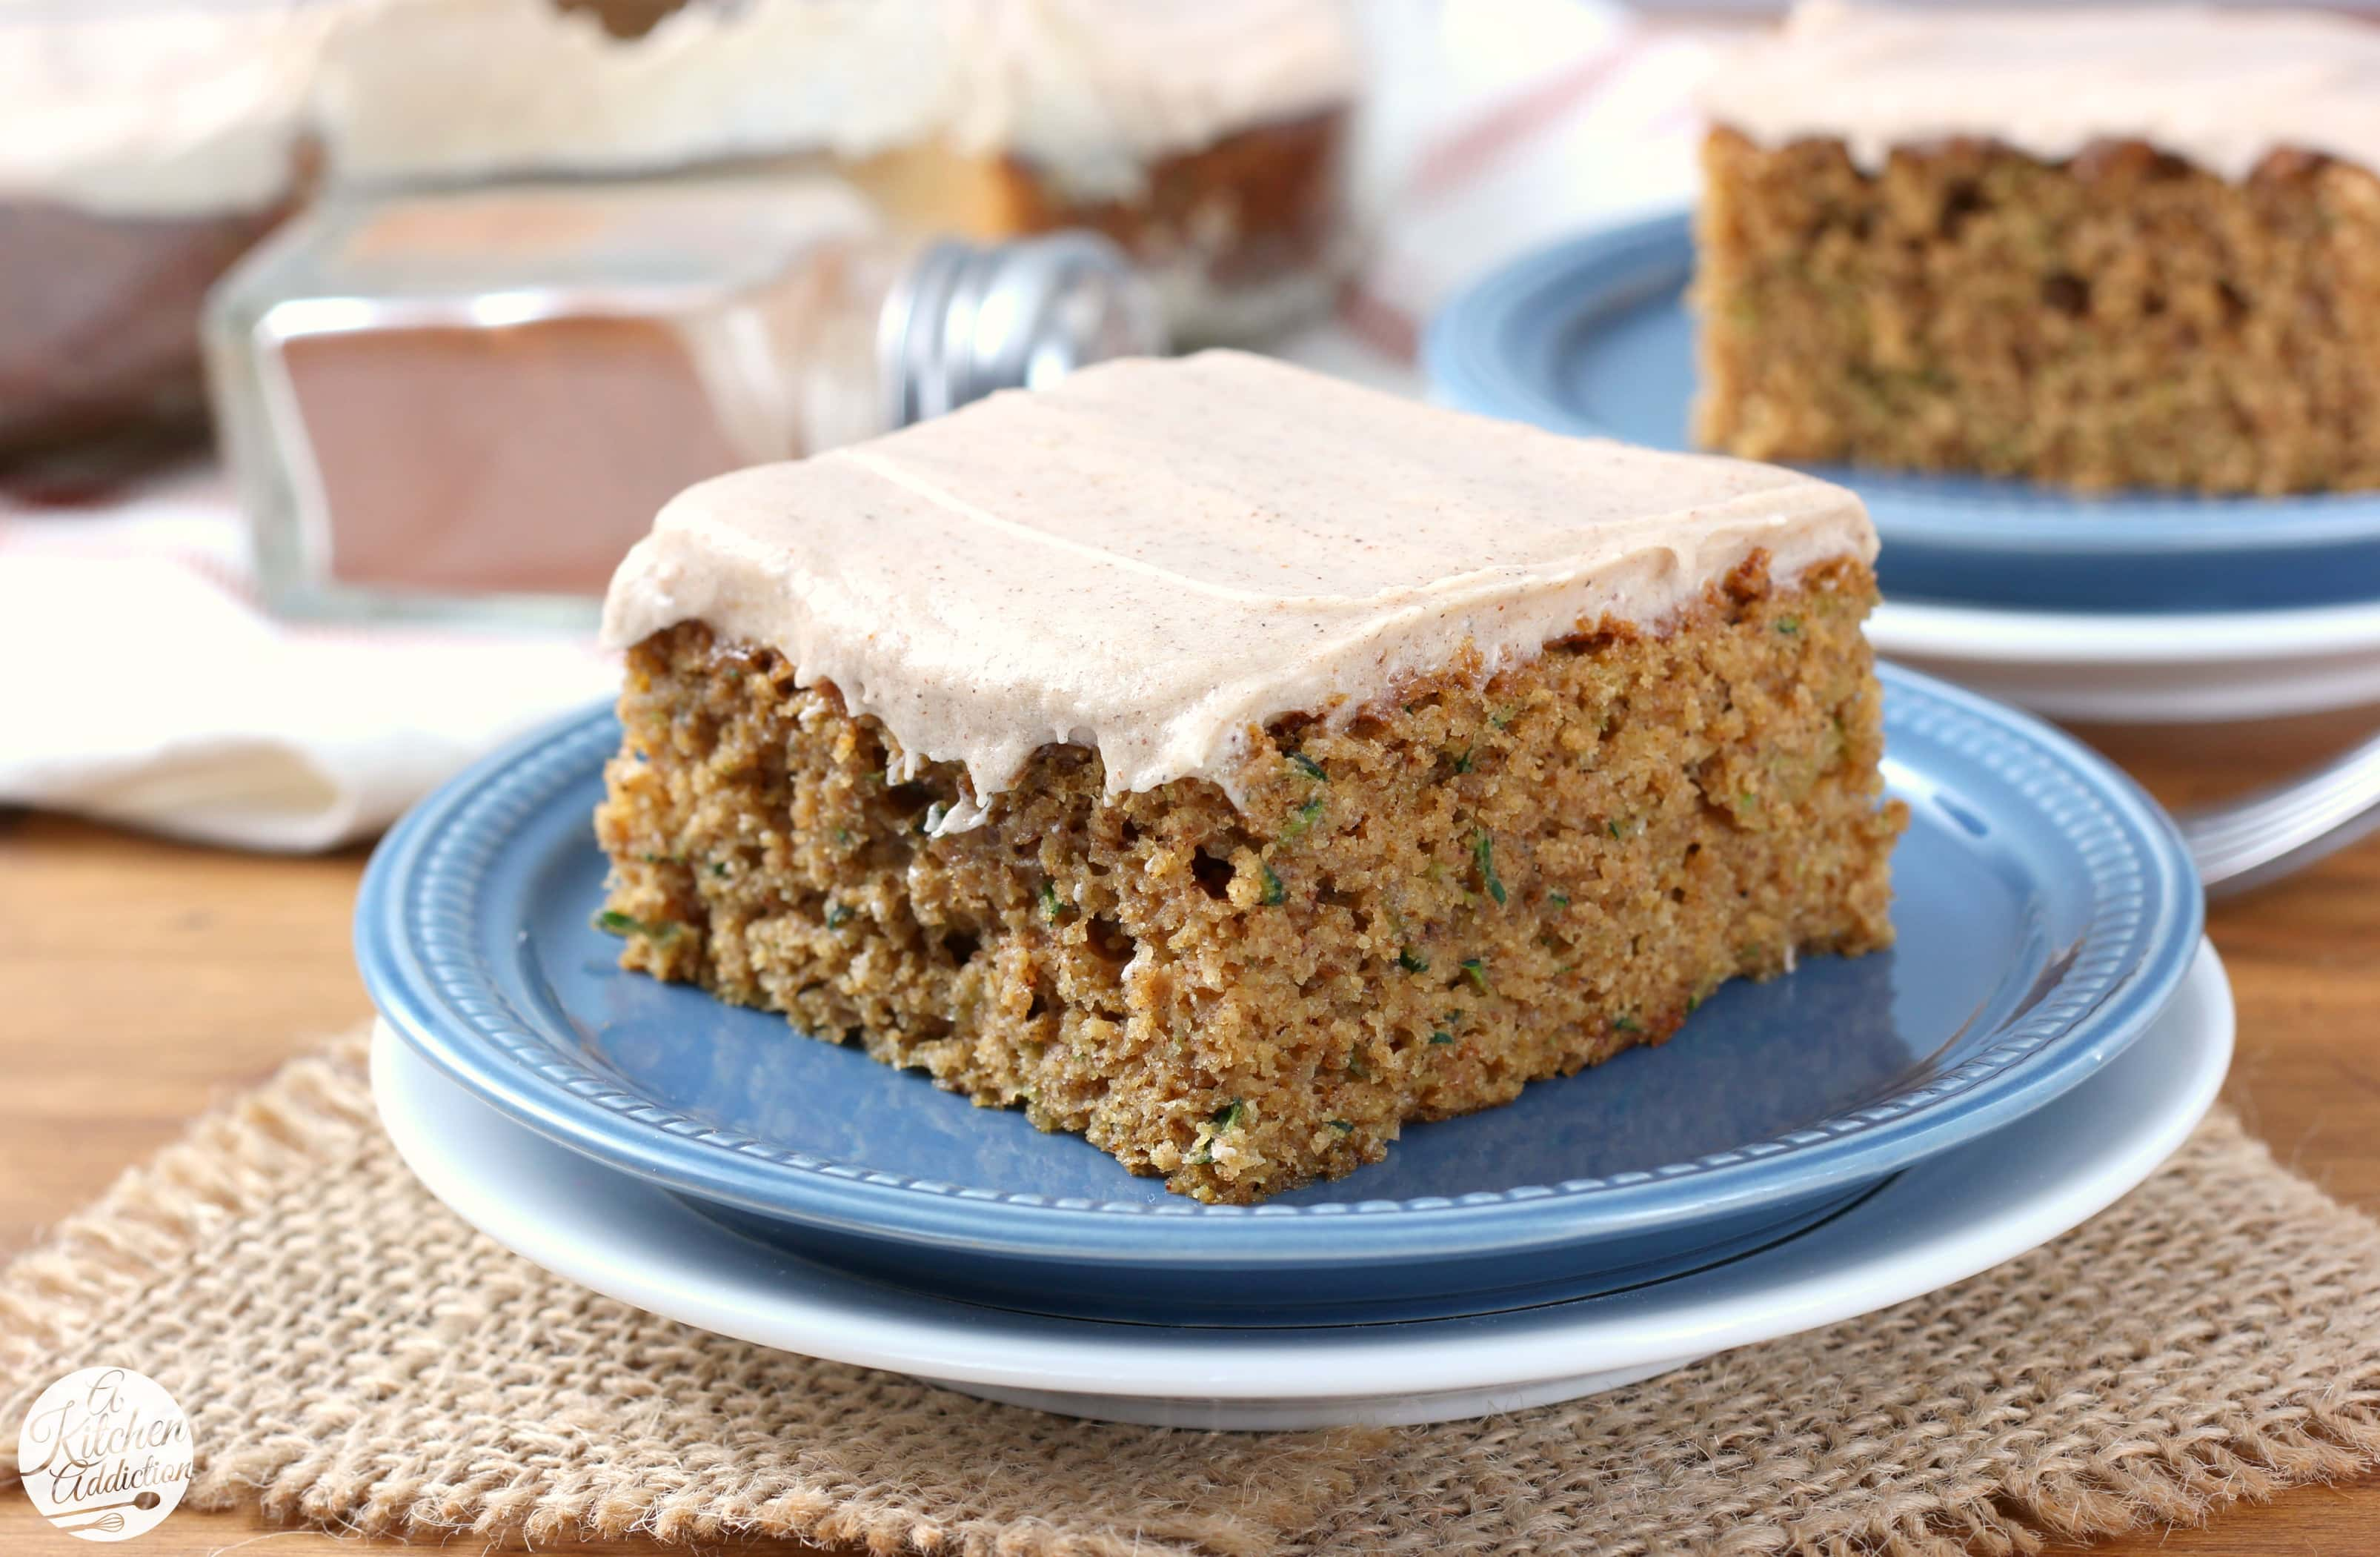 Spiced Cream Cheese Frosted Zucchini Bars Recipe from A Kitchen Addiction